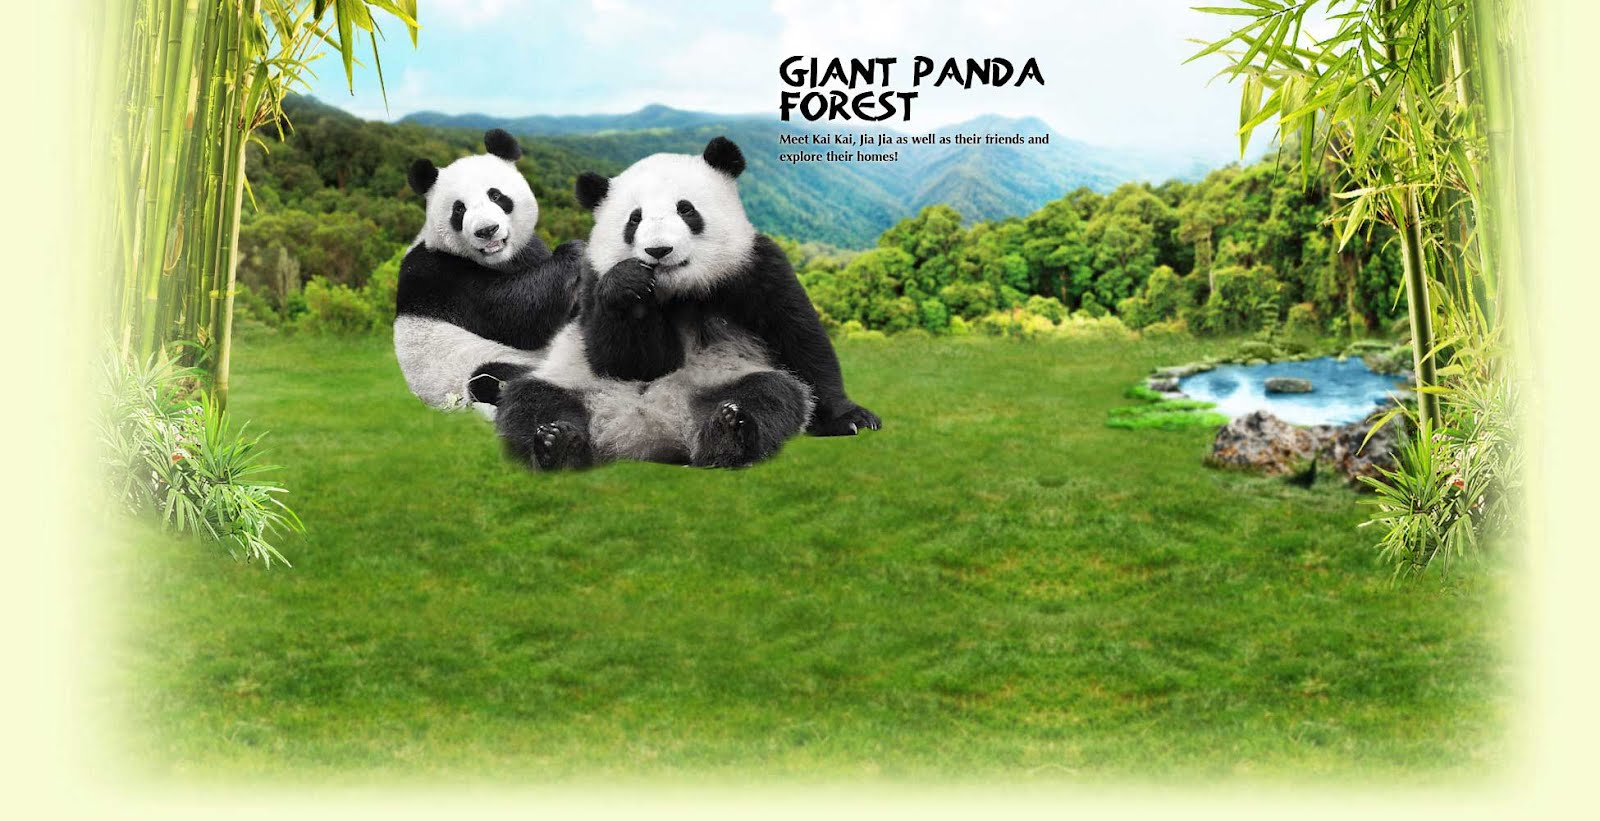 Giant Panda Forest - Welcome to the home of Singapore's very own giant pandas, Kai Kai and Jia Jia!